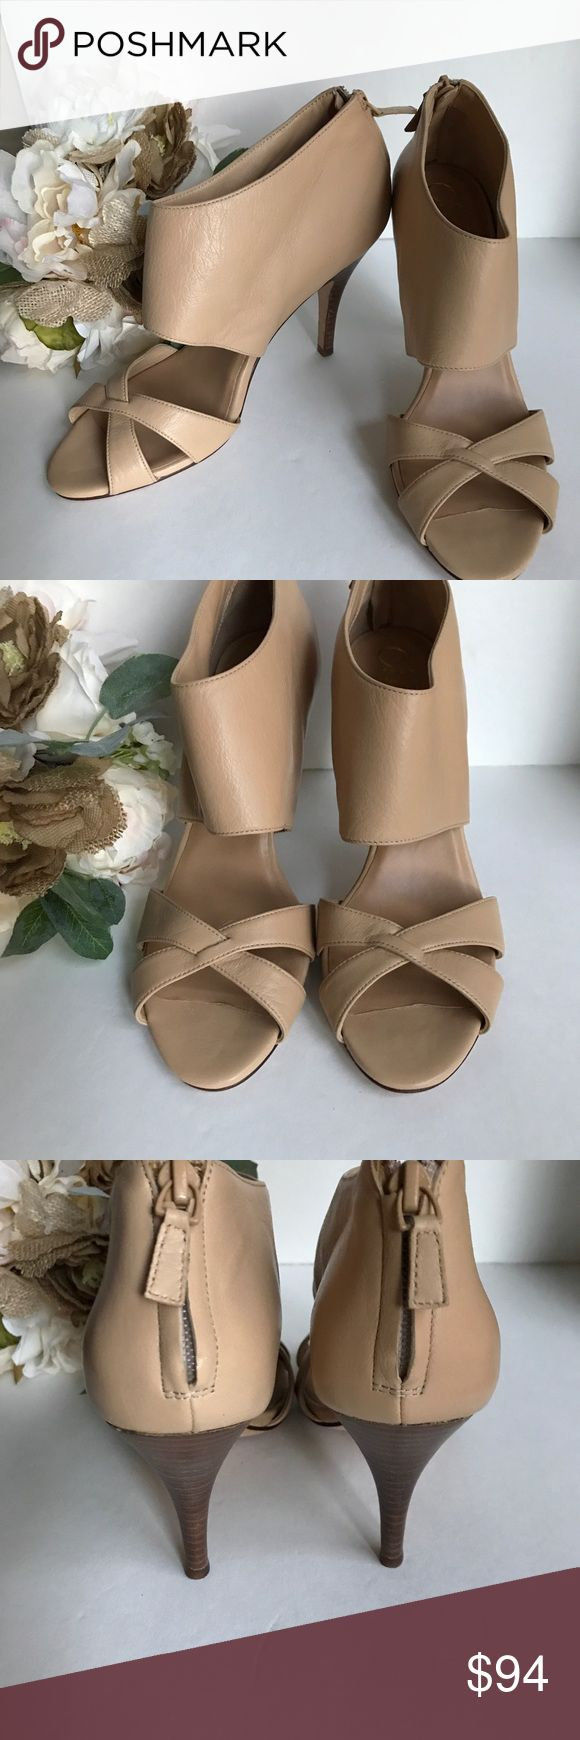 "Cole Haan 100% leather cream heels Excellent Used Condition.  Got sticky sticker stuff on bottom. Sorry couldn't get it off.  Heel 4"" Gorgeous Heals. Zip closure. Cole Haan Shoes Heels"